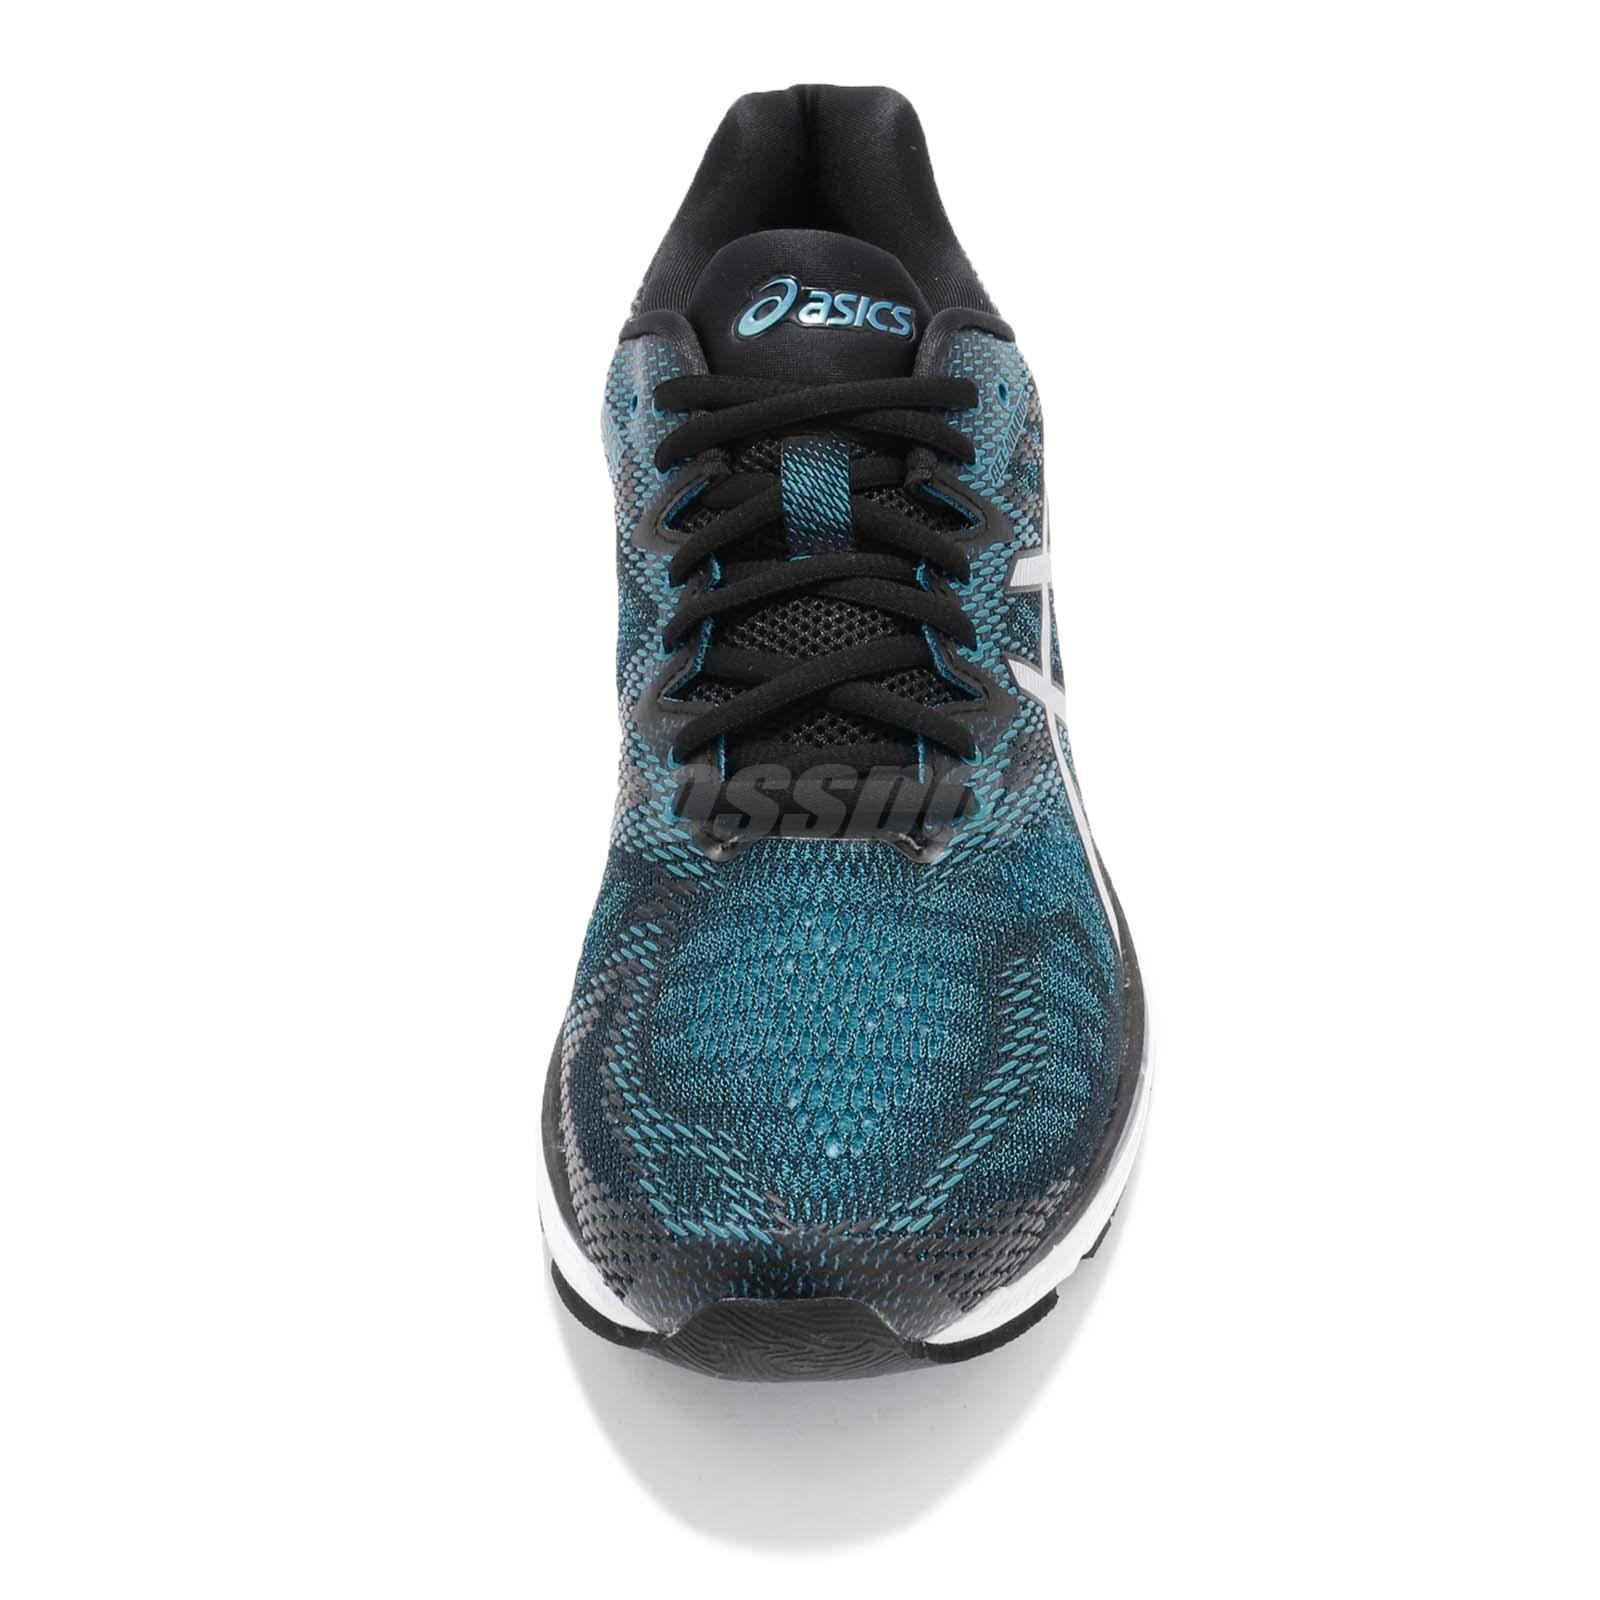 c45f439101 Asics Gel-Nimbus 20 Island Blue White Black Men Running Training ...